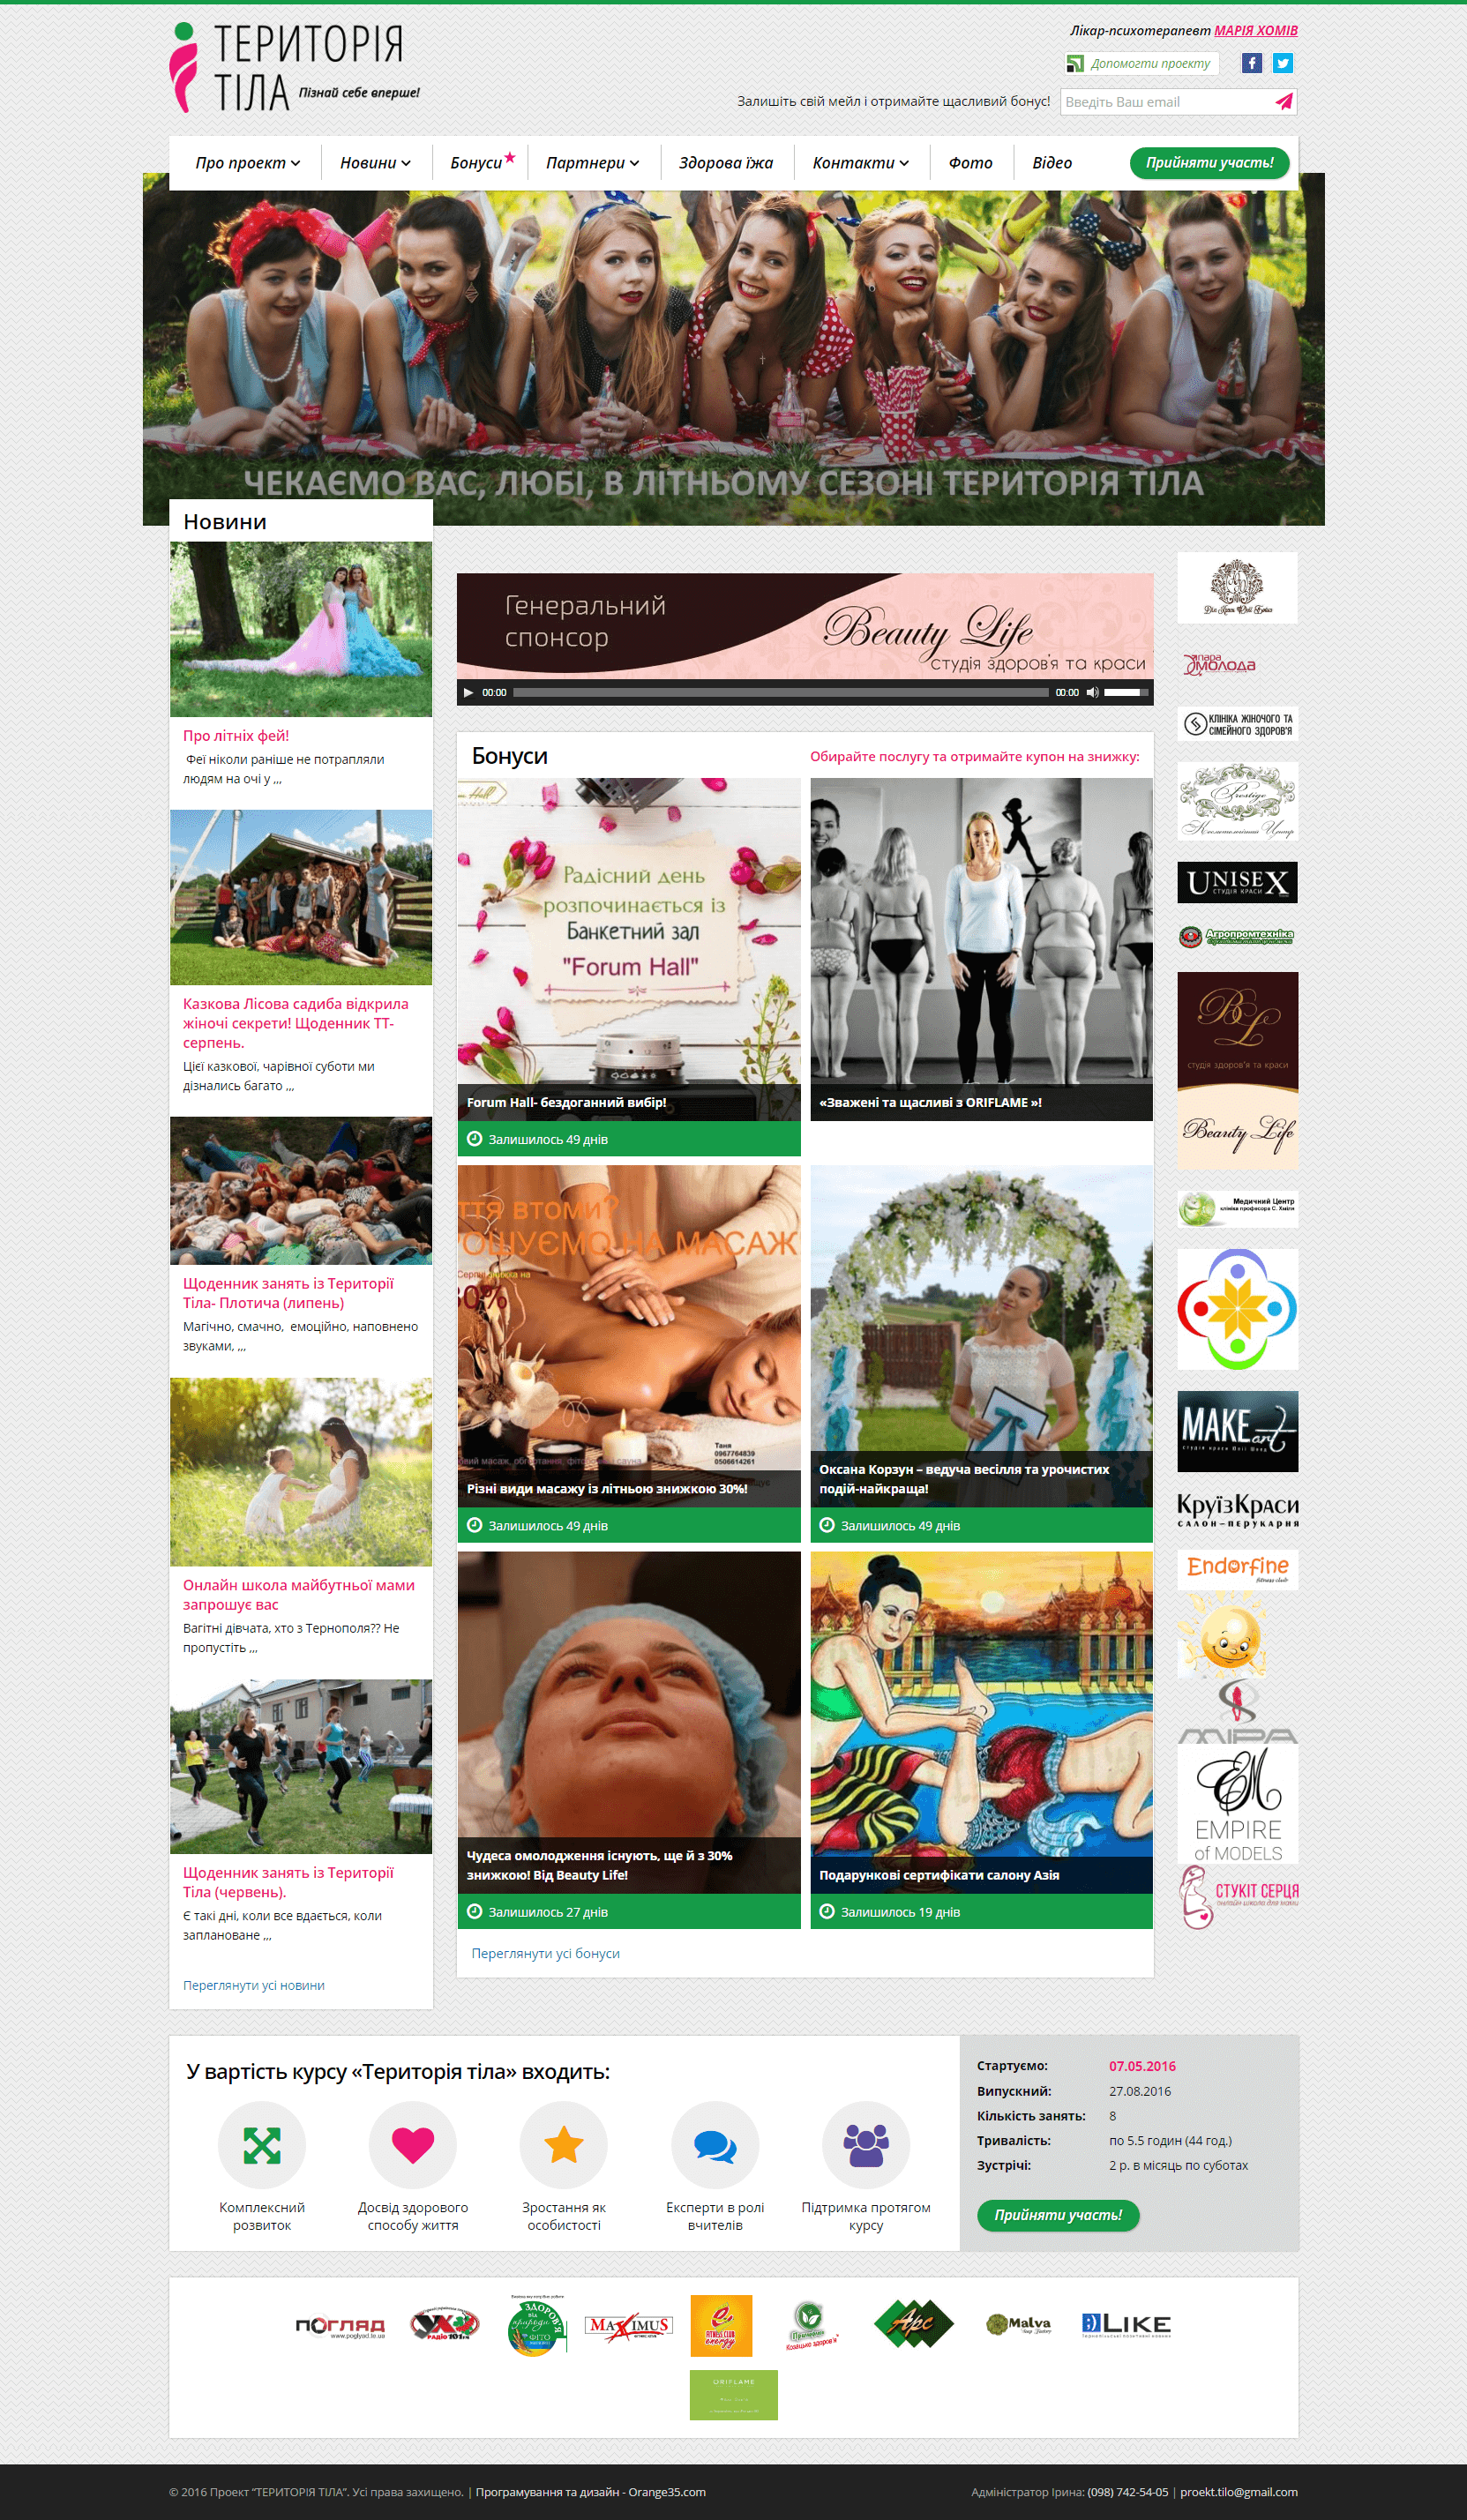 Create an Educational Website Similat to Teritoriya Tila